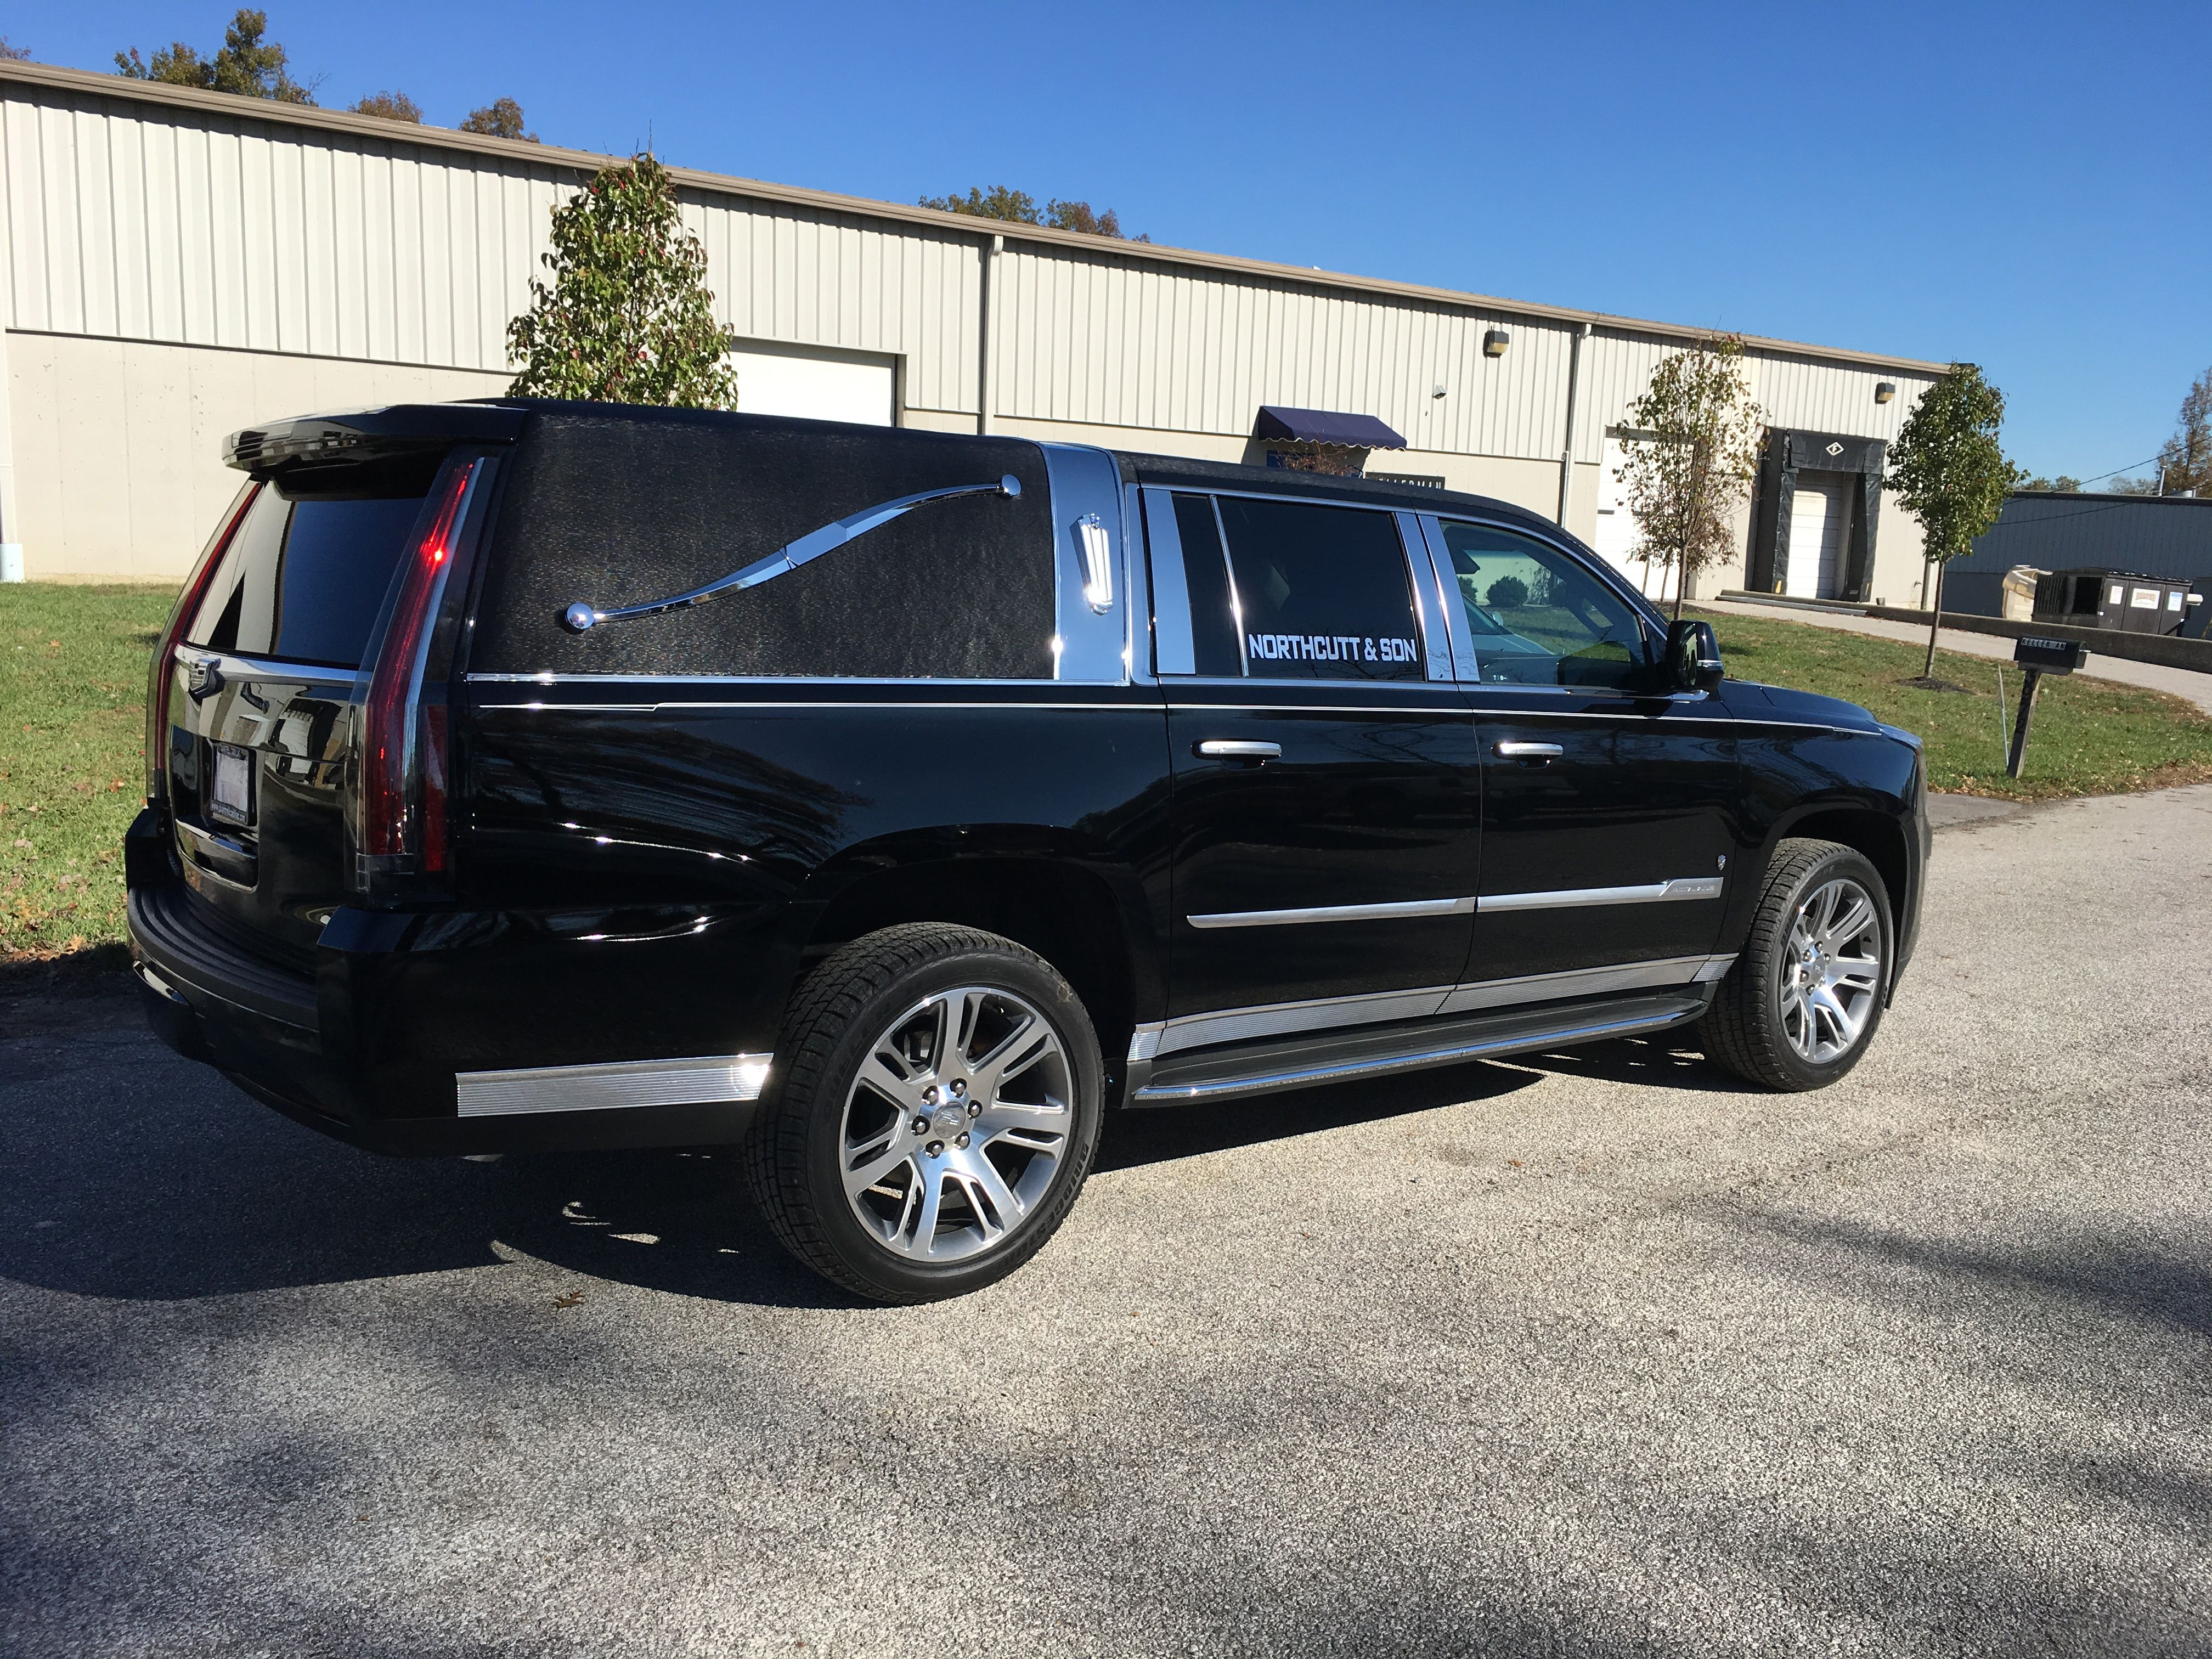 K2 vehicles cadillac escalade hearse